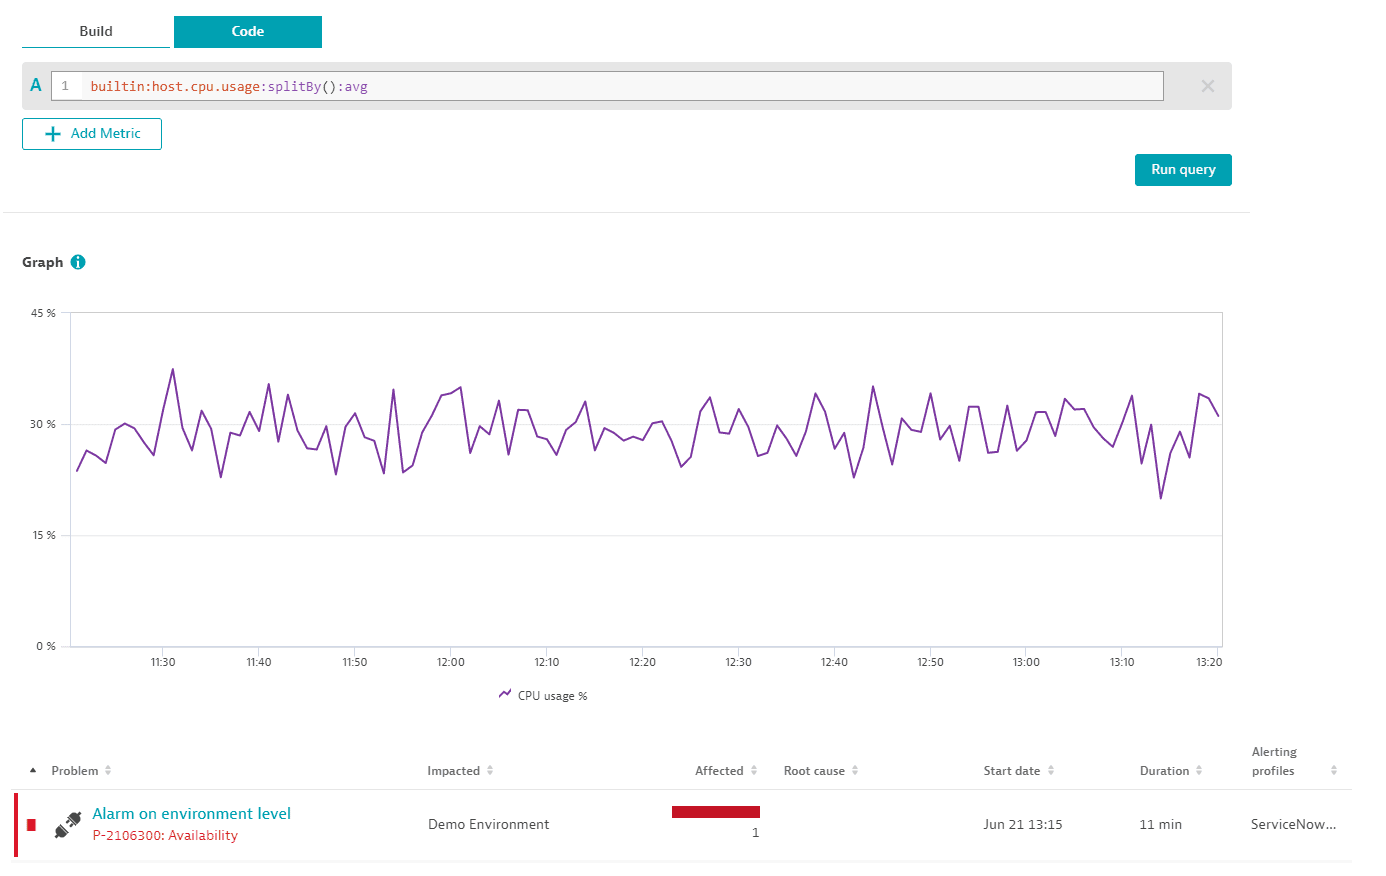 anomaly detection - global level